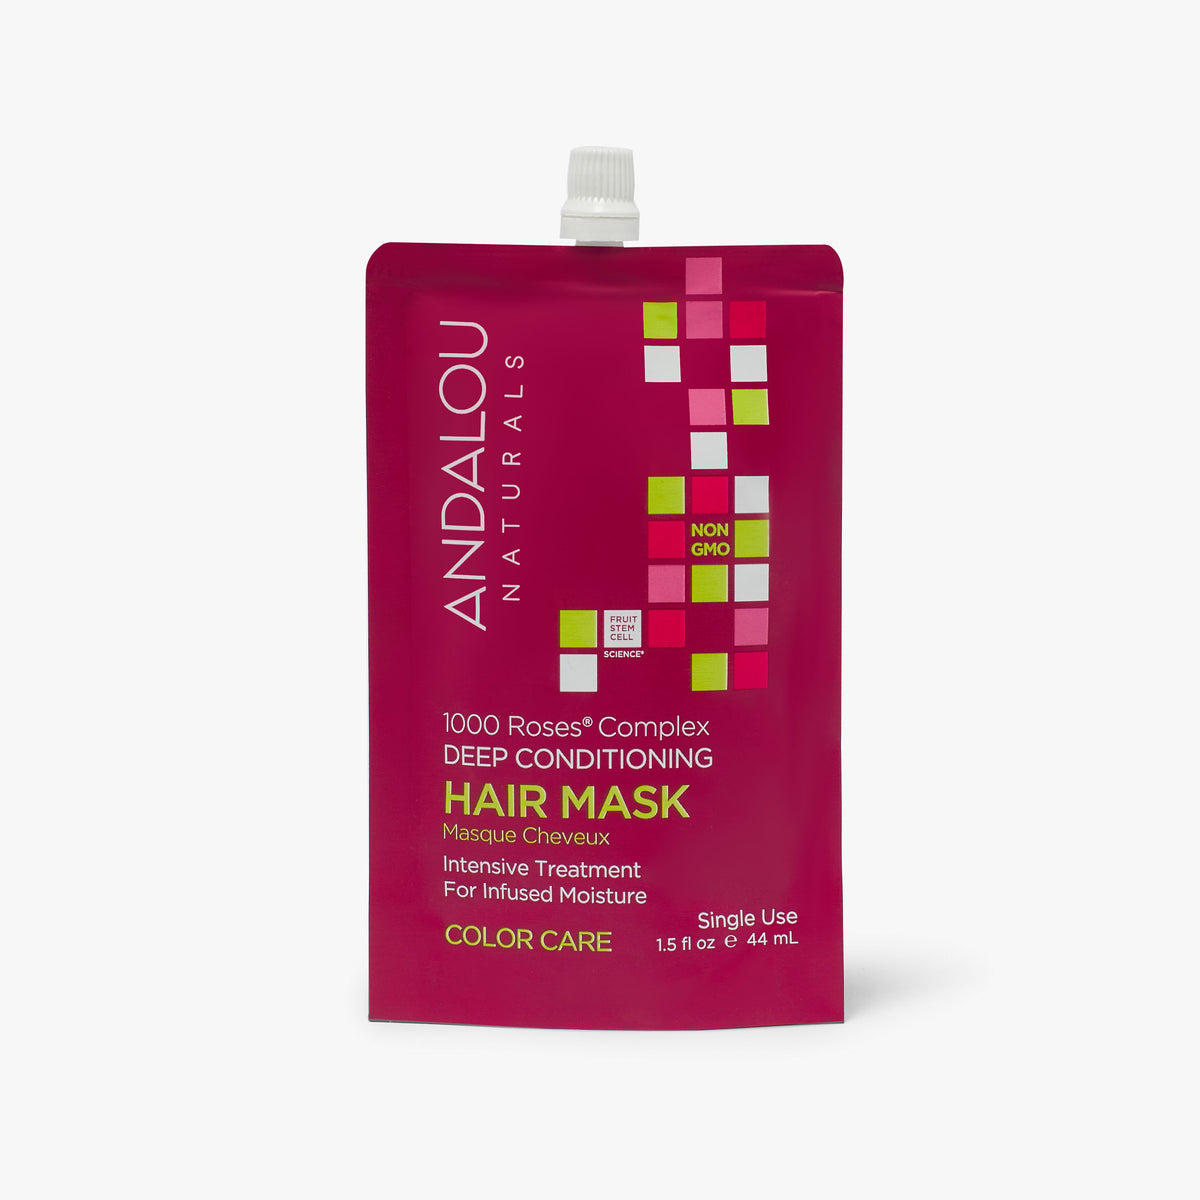 1000 Roses Complex Color Care Deep Conditioning Hair Mask - Andalou Naturals US